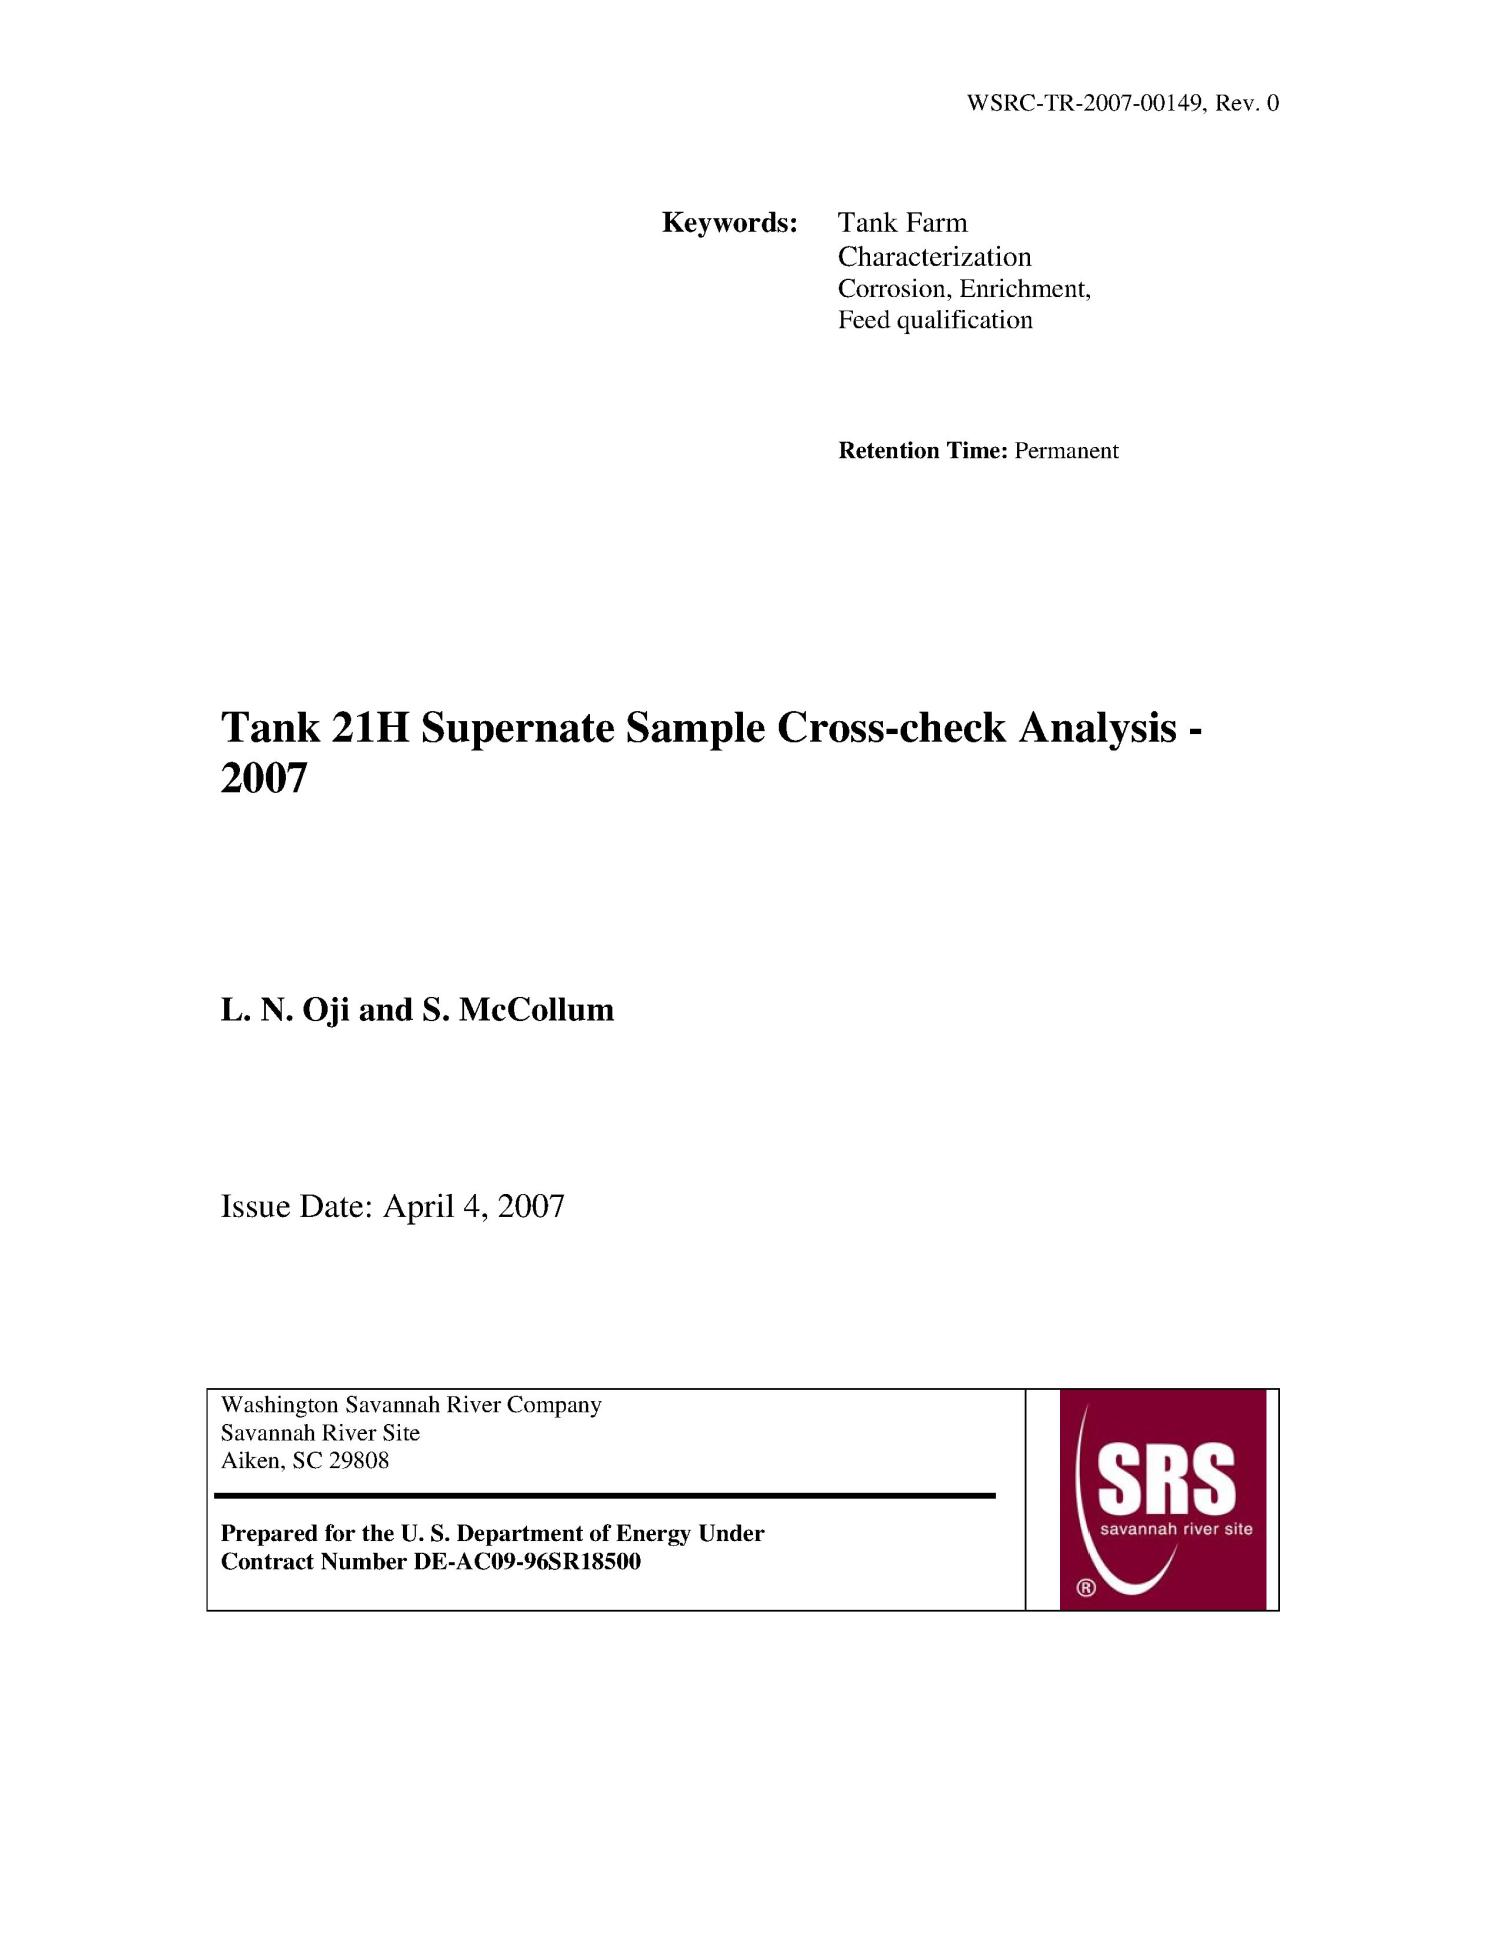 TANK 21H SUPERNATE SAMPLE CROSS-CHECK ANALYSIS - 2007                                                                                                      [Sequence #]: 1 of 6